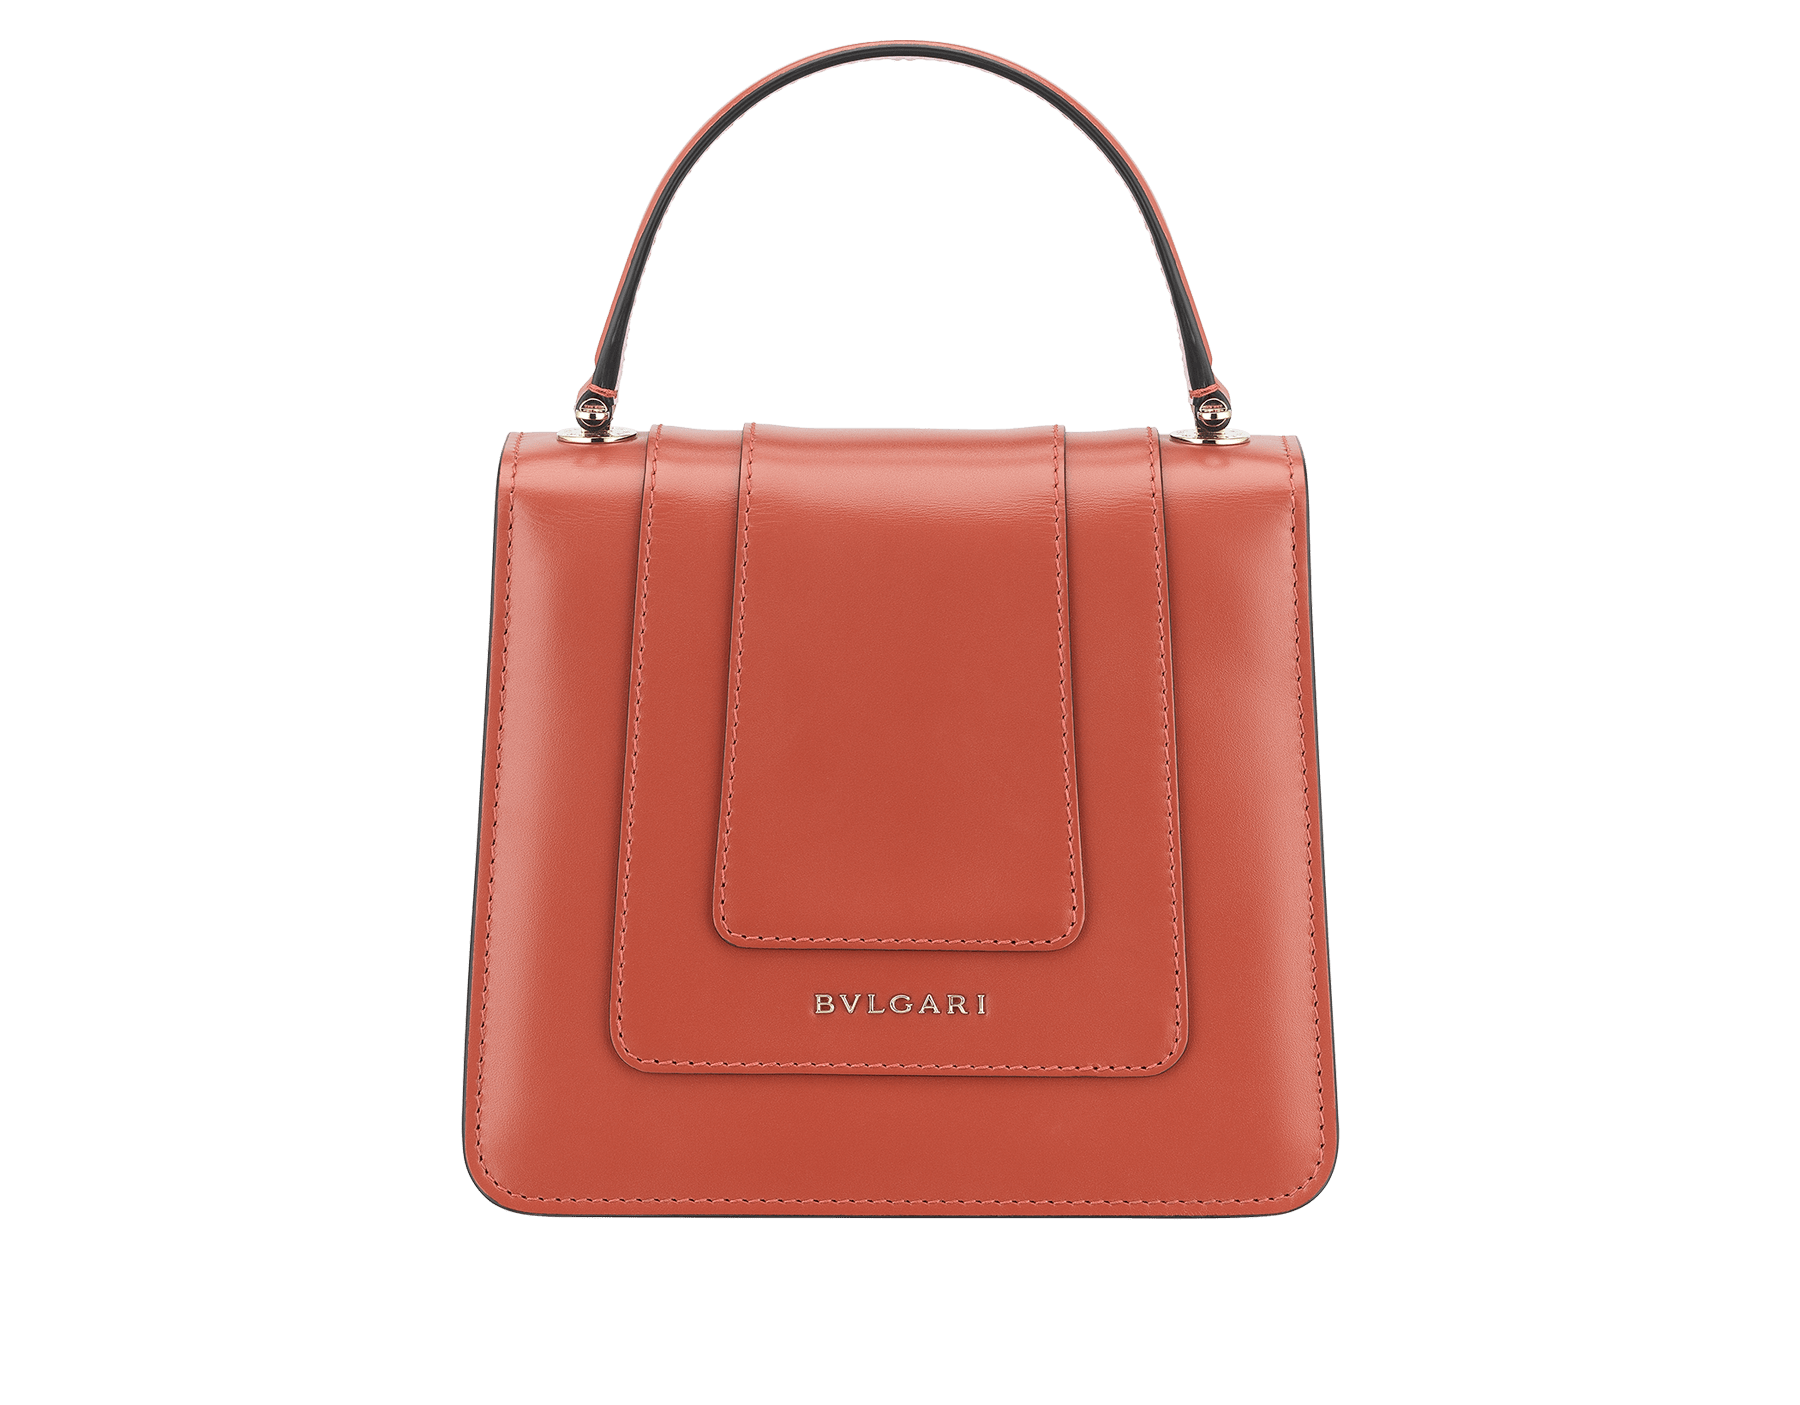 Serpenti Forever crossbody bag in imperial topaz calf leather with Roman garnet, rosa di francia and white agate calf leather sides. Iconic snakehead closure in light gold plated brass embellished with imperial topaz and rosa di francia enamel and black onyx eyes. 288889 image 3